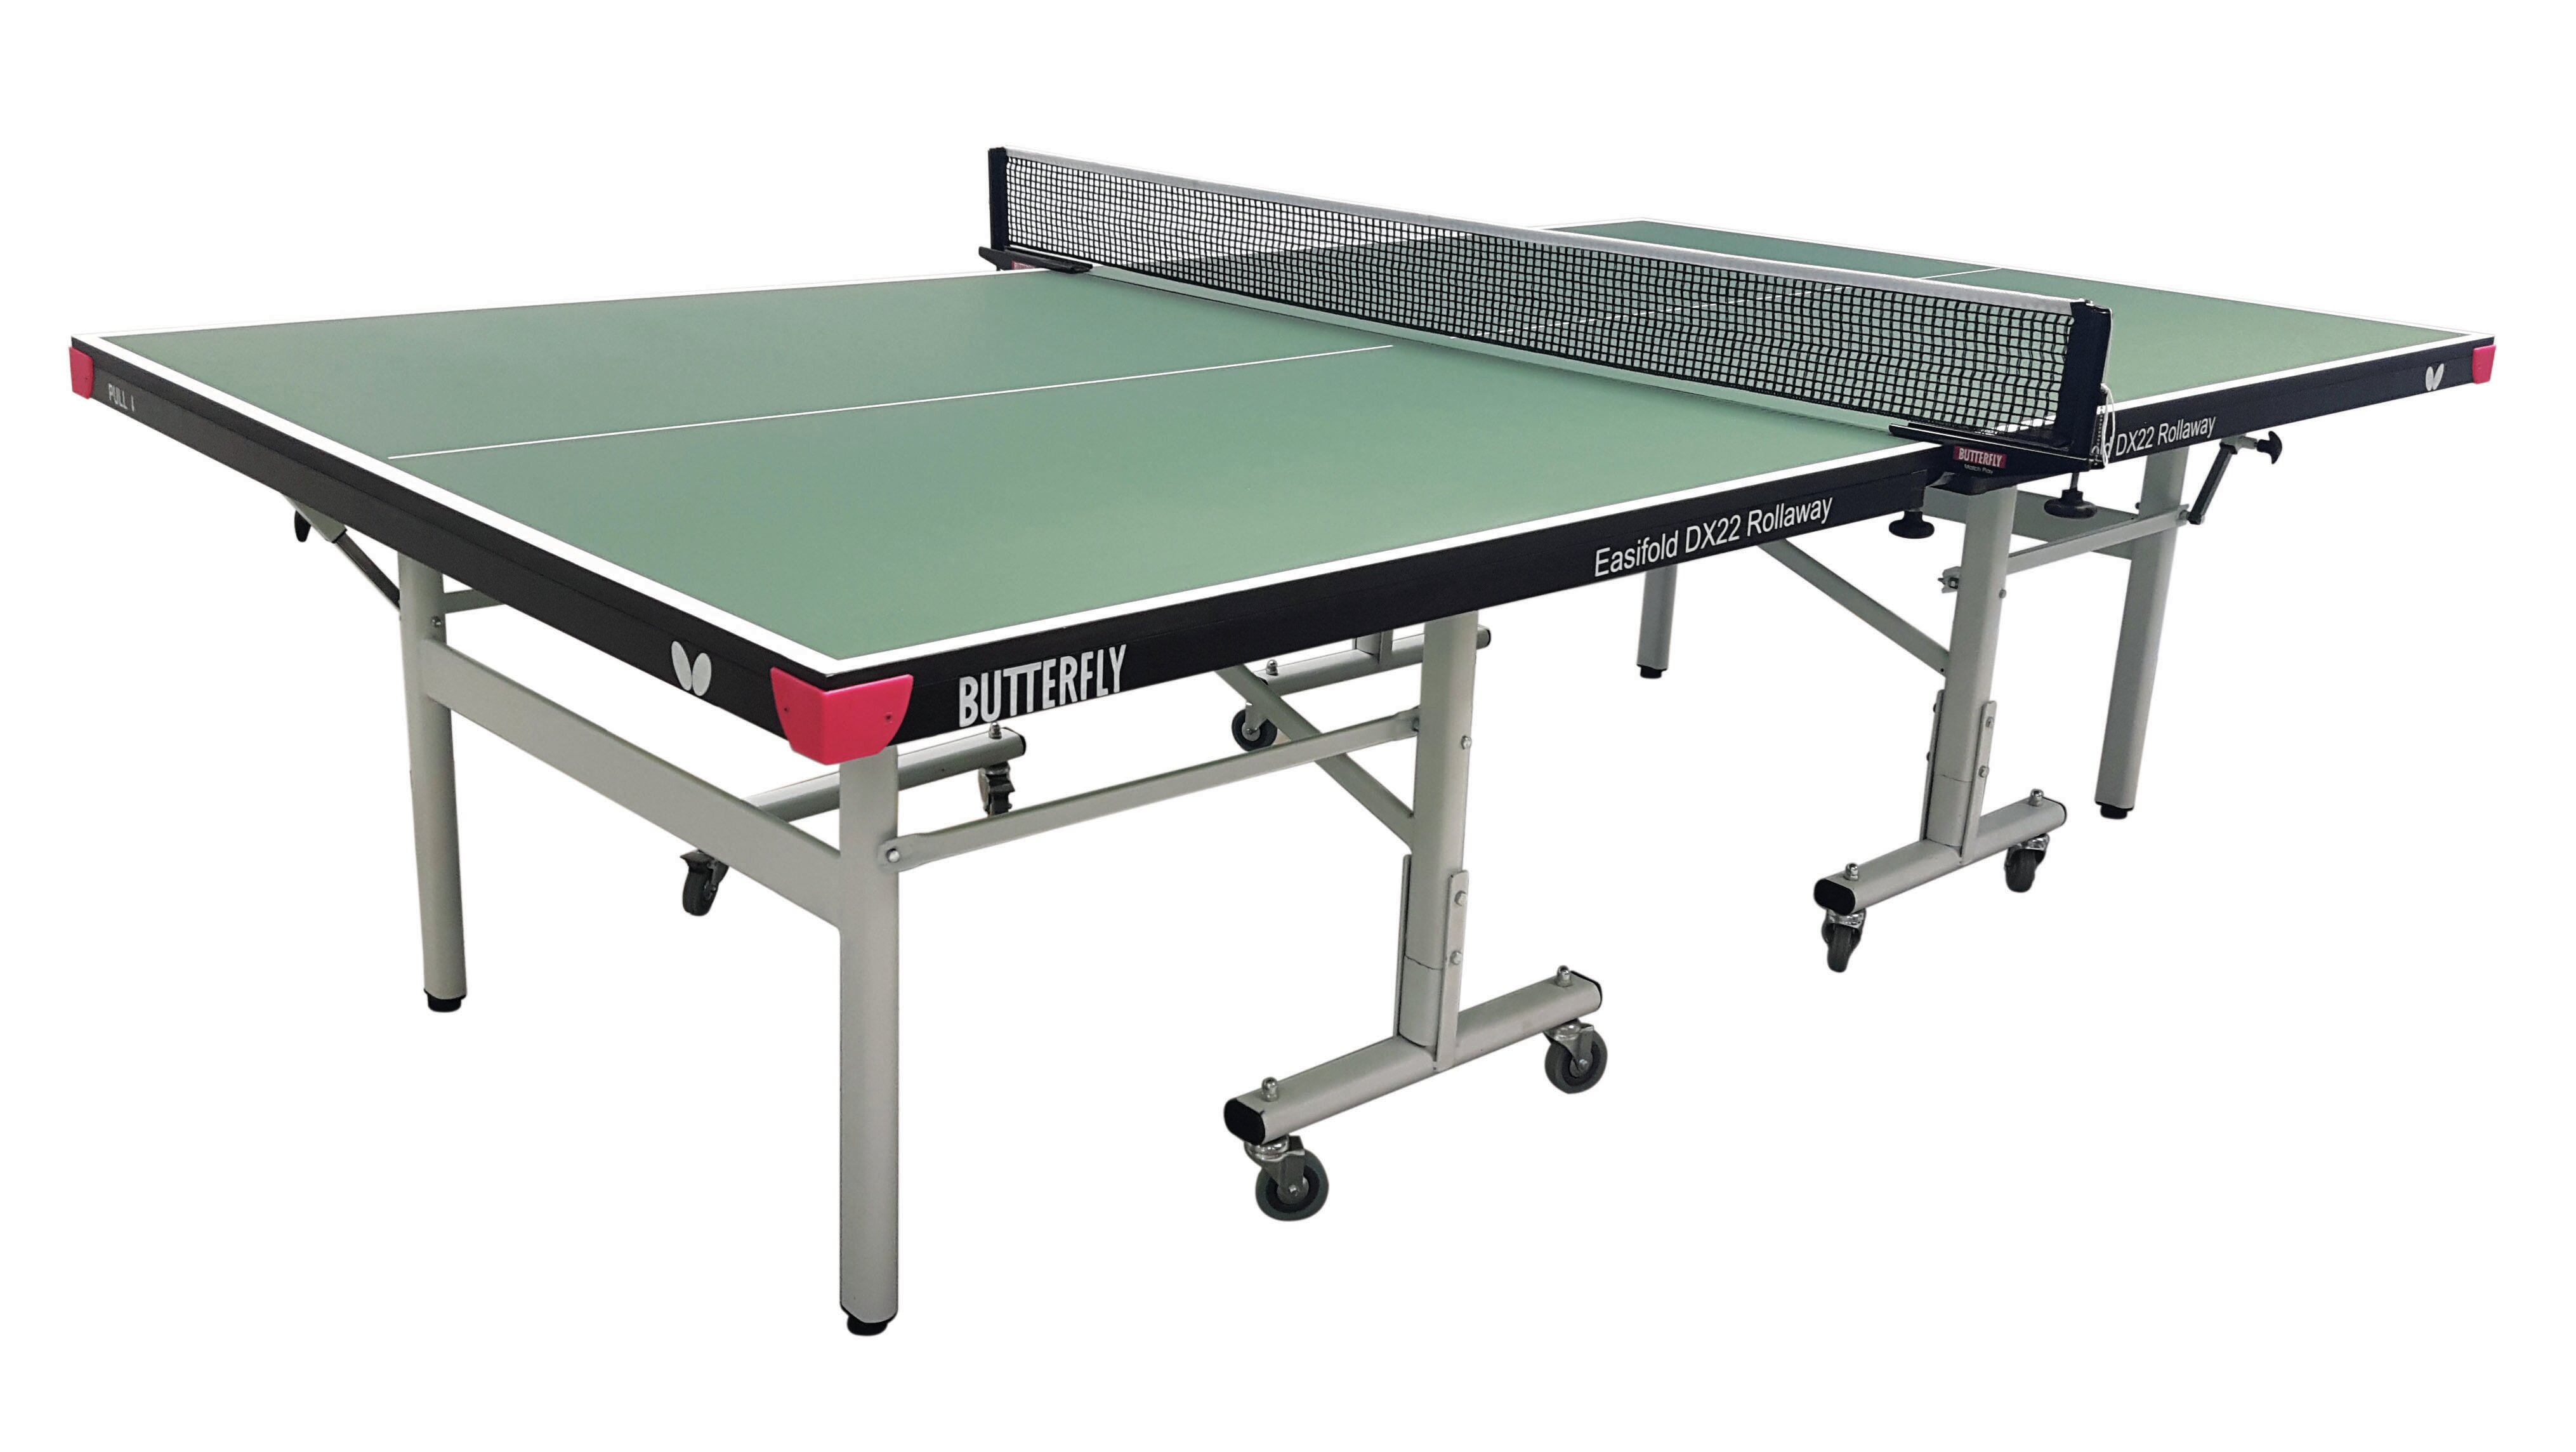 Butterfly Easifold Butterfly Indoor Table Tennis Table | Wayfair